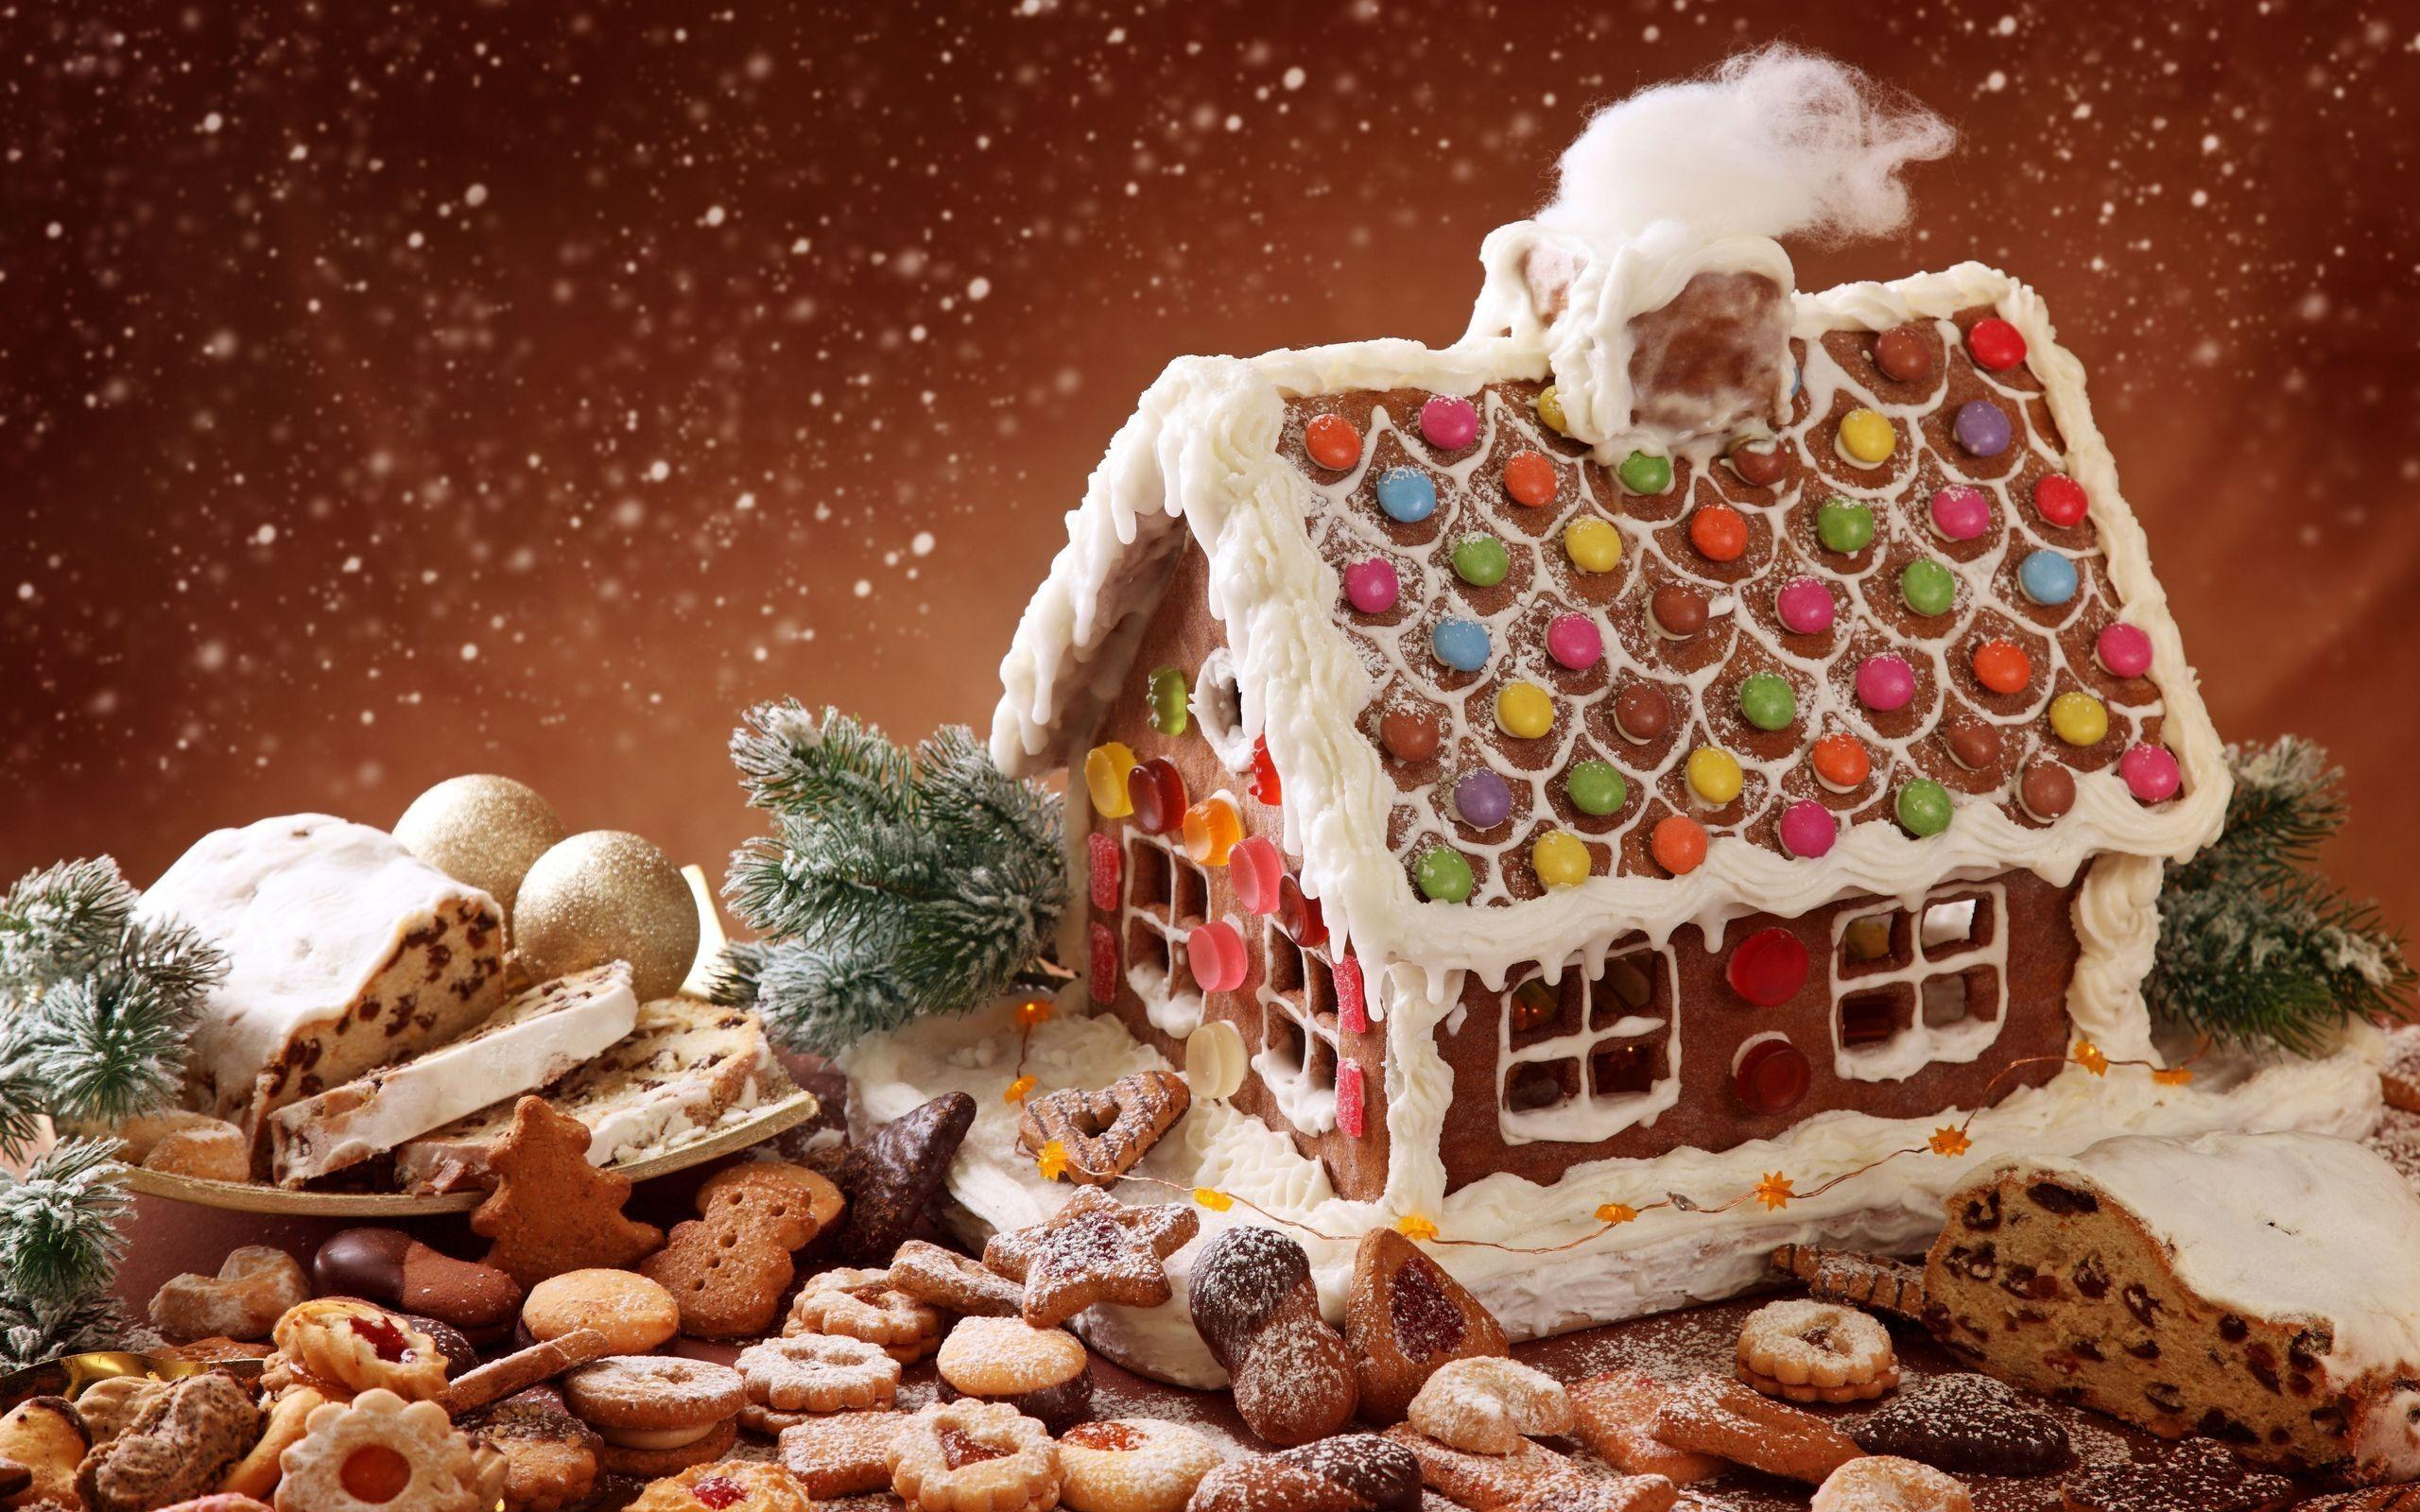 Christmas Gingerbread House wallpapers